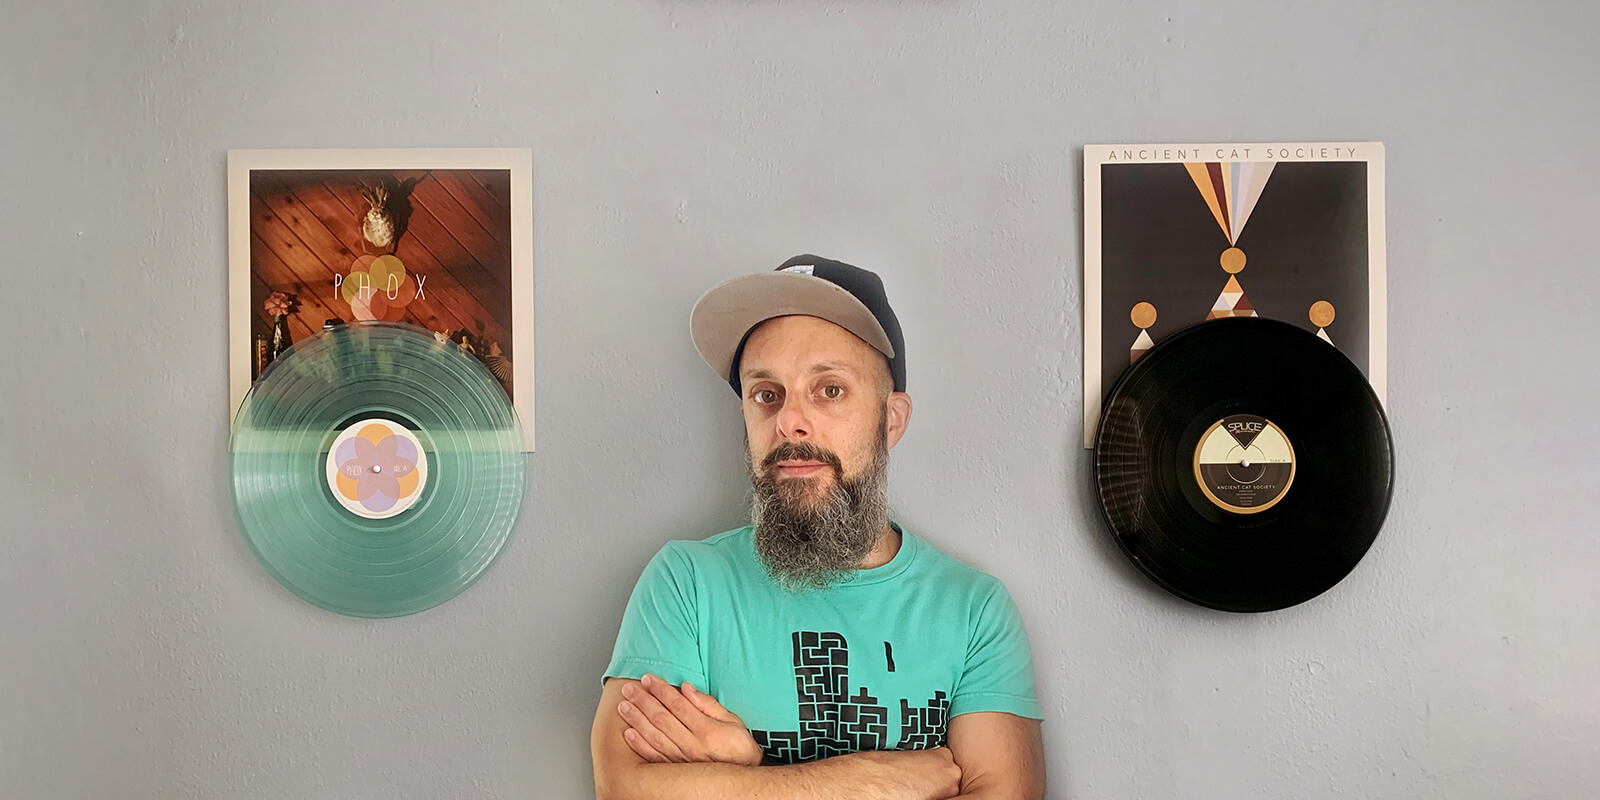 Record Props founder, Tim DeSilva, appreciating a few favorite vinyl record selections. The medium of vinyl provides the means to celebrate both the musicians and the visual artists behind the creation of every album, past and present.